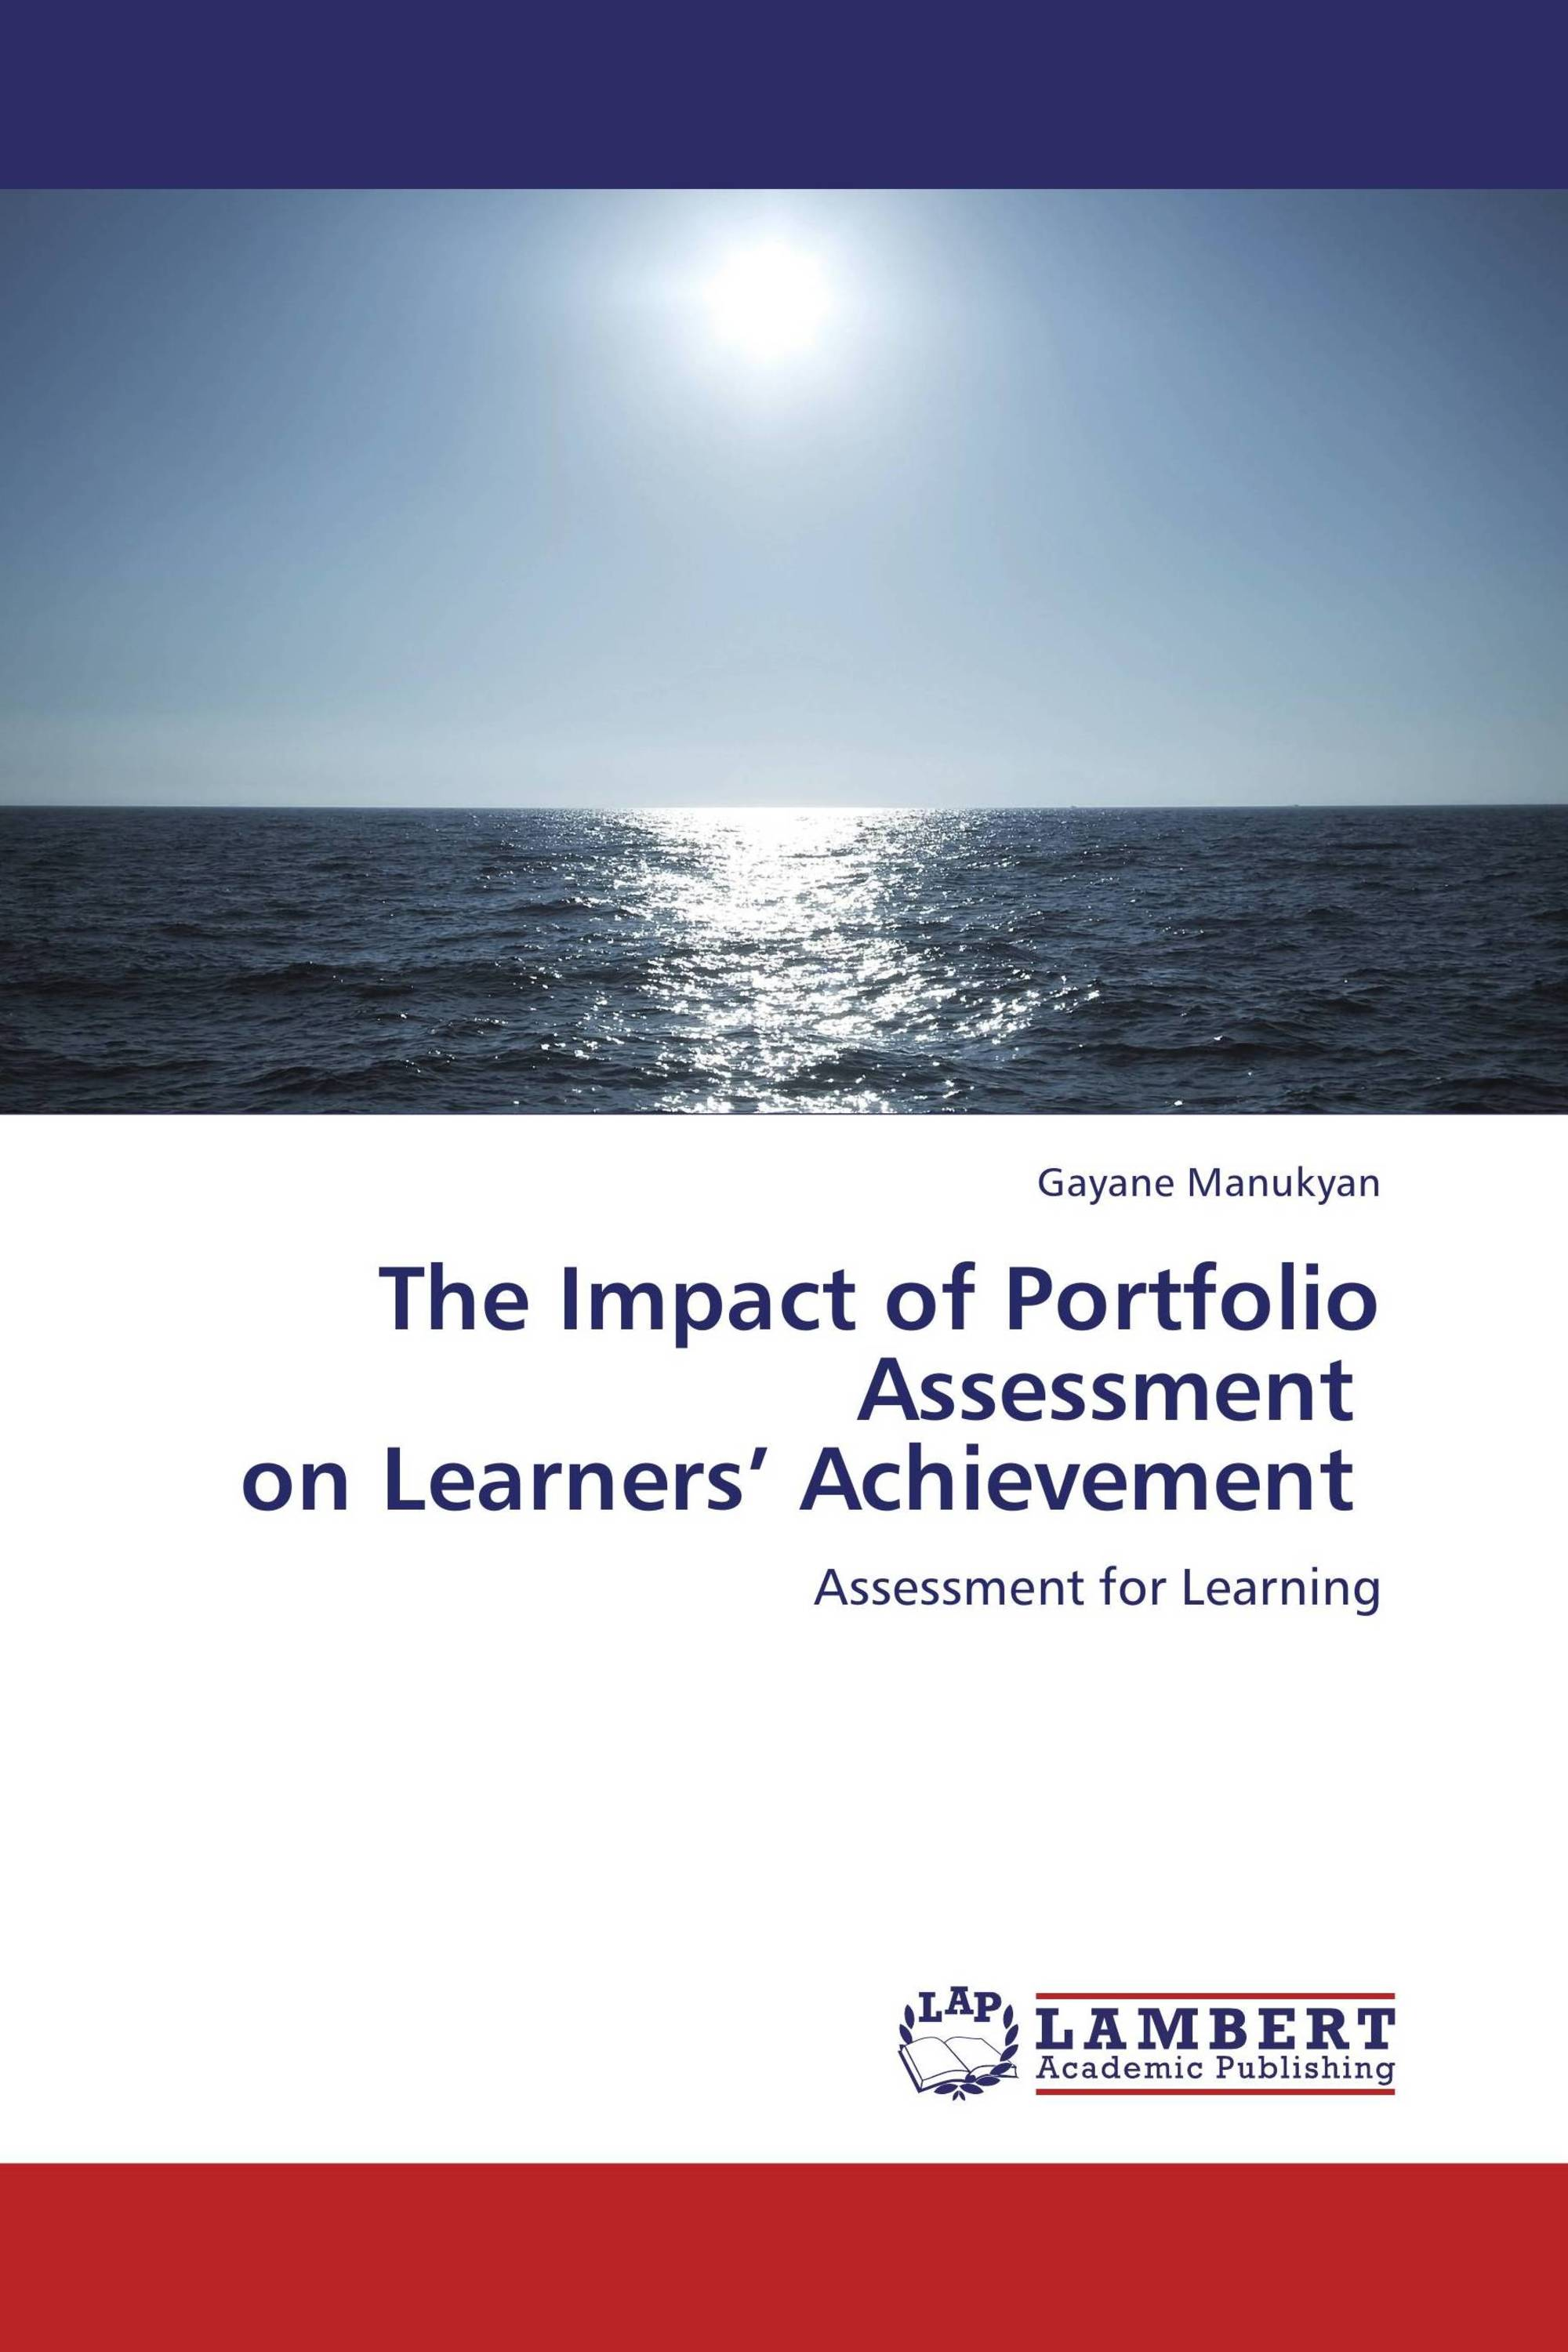 The Impact of Portfolio Assessment   on Learners' Achievement